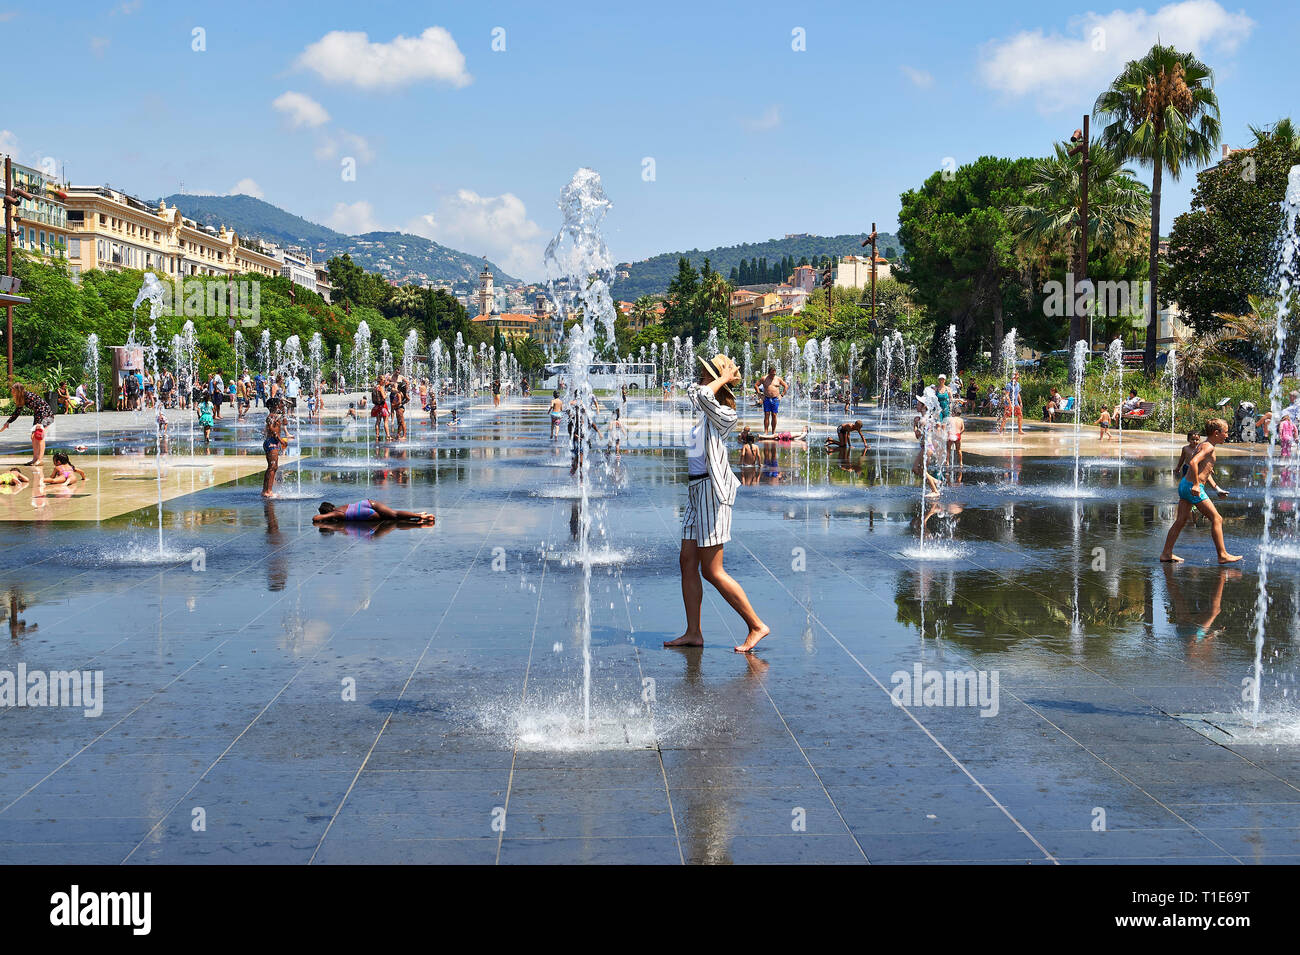 Nice (south-eastern France): someone walking on the reflecting pool